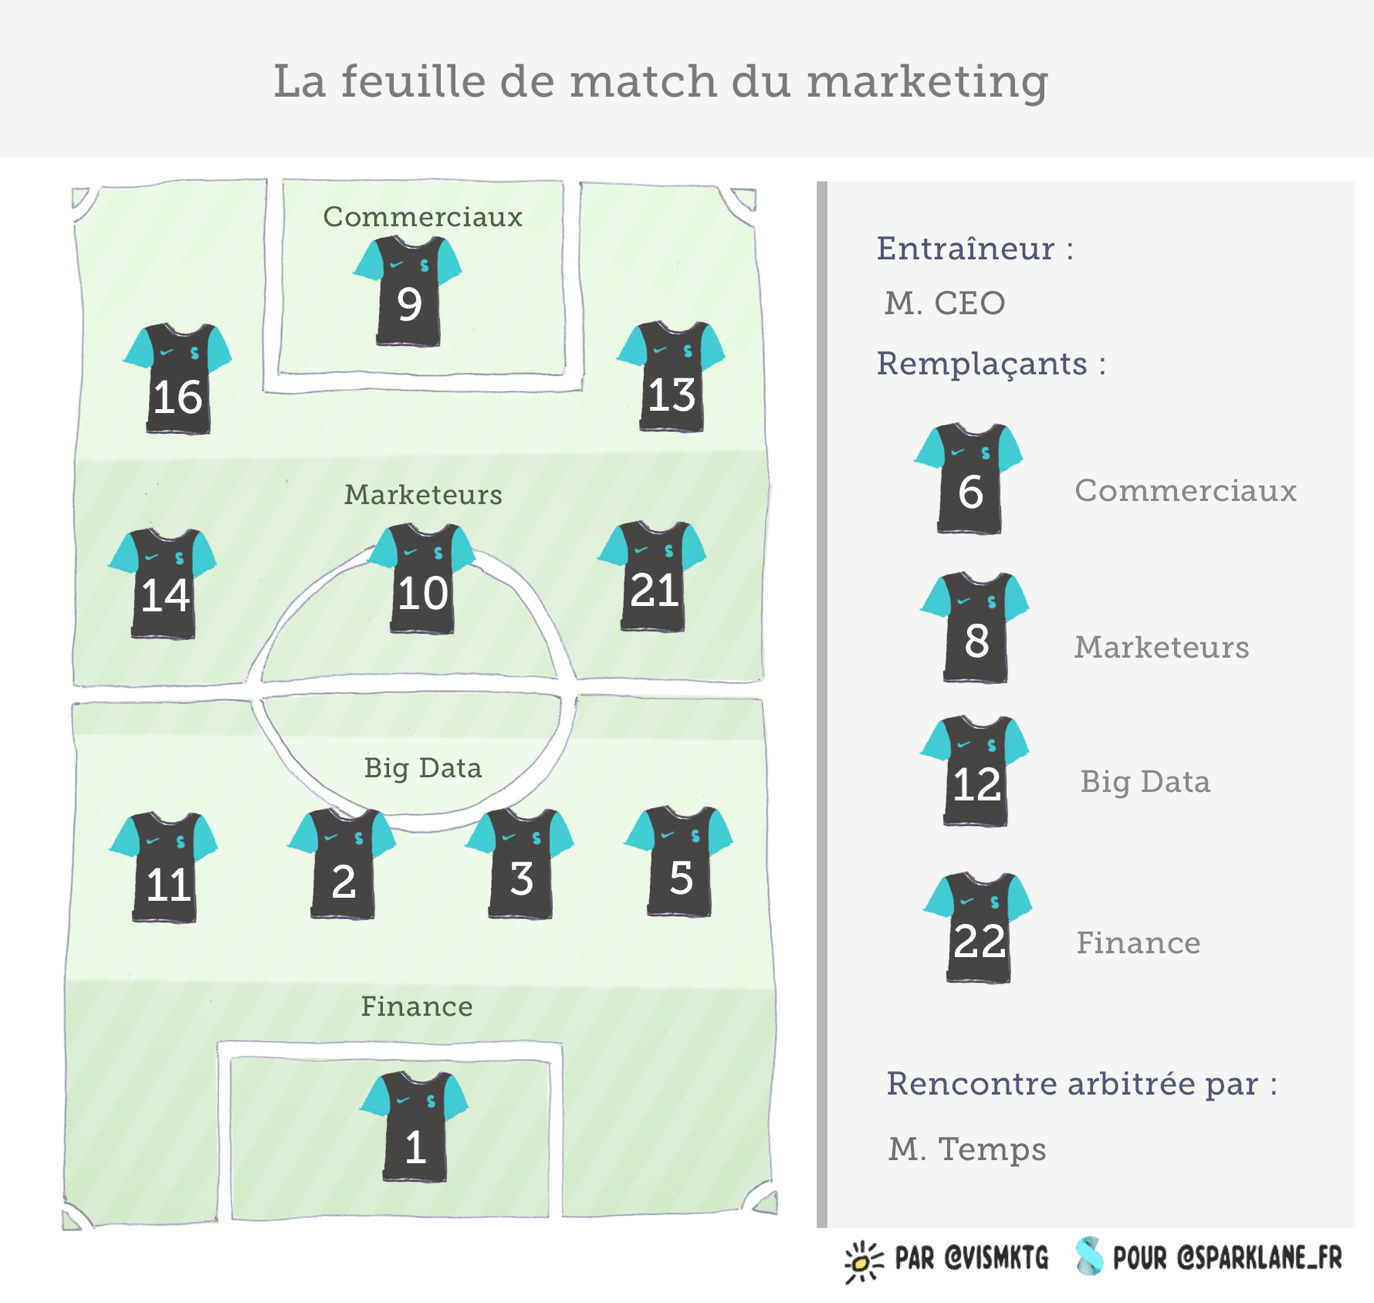 la feuille de match du marketing